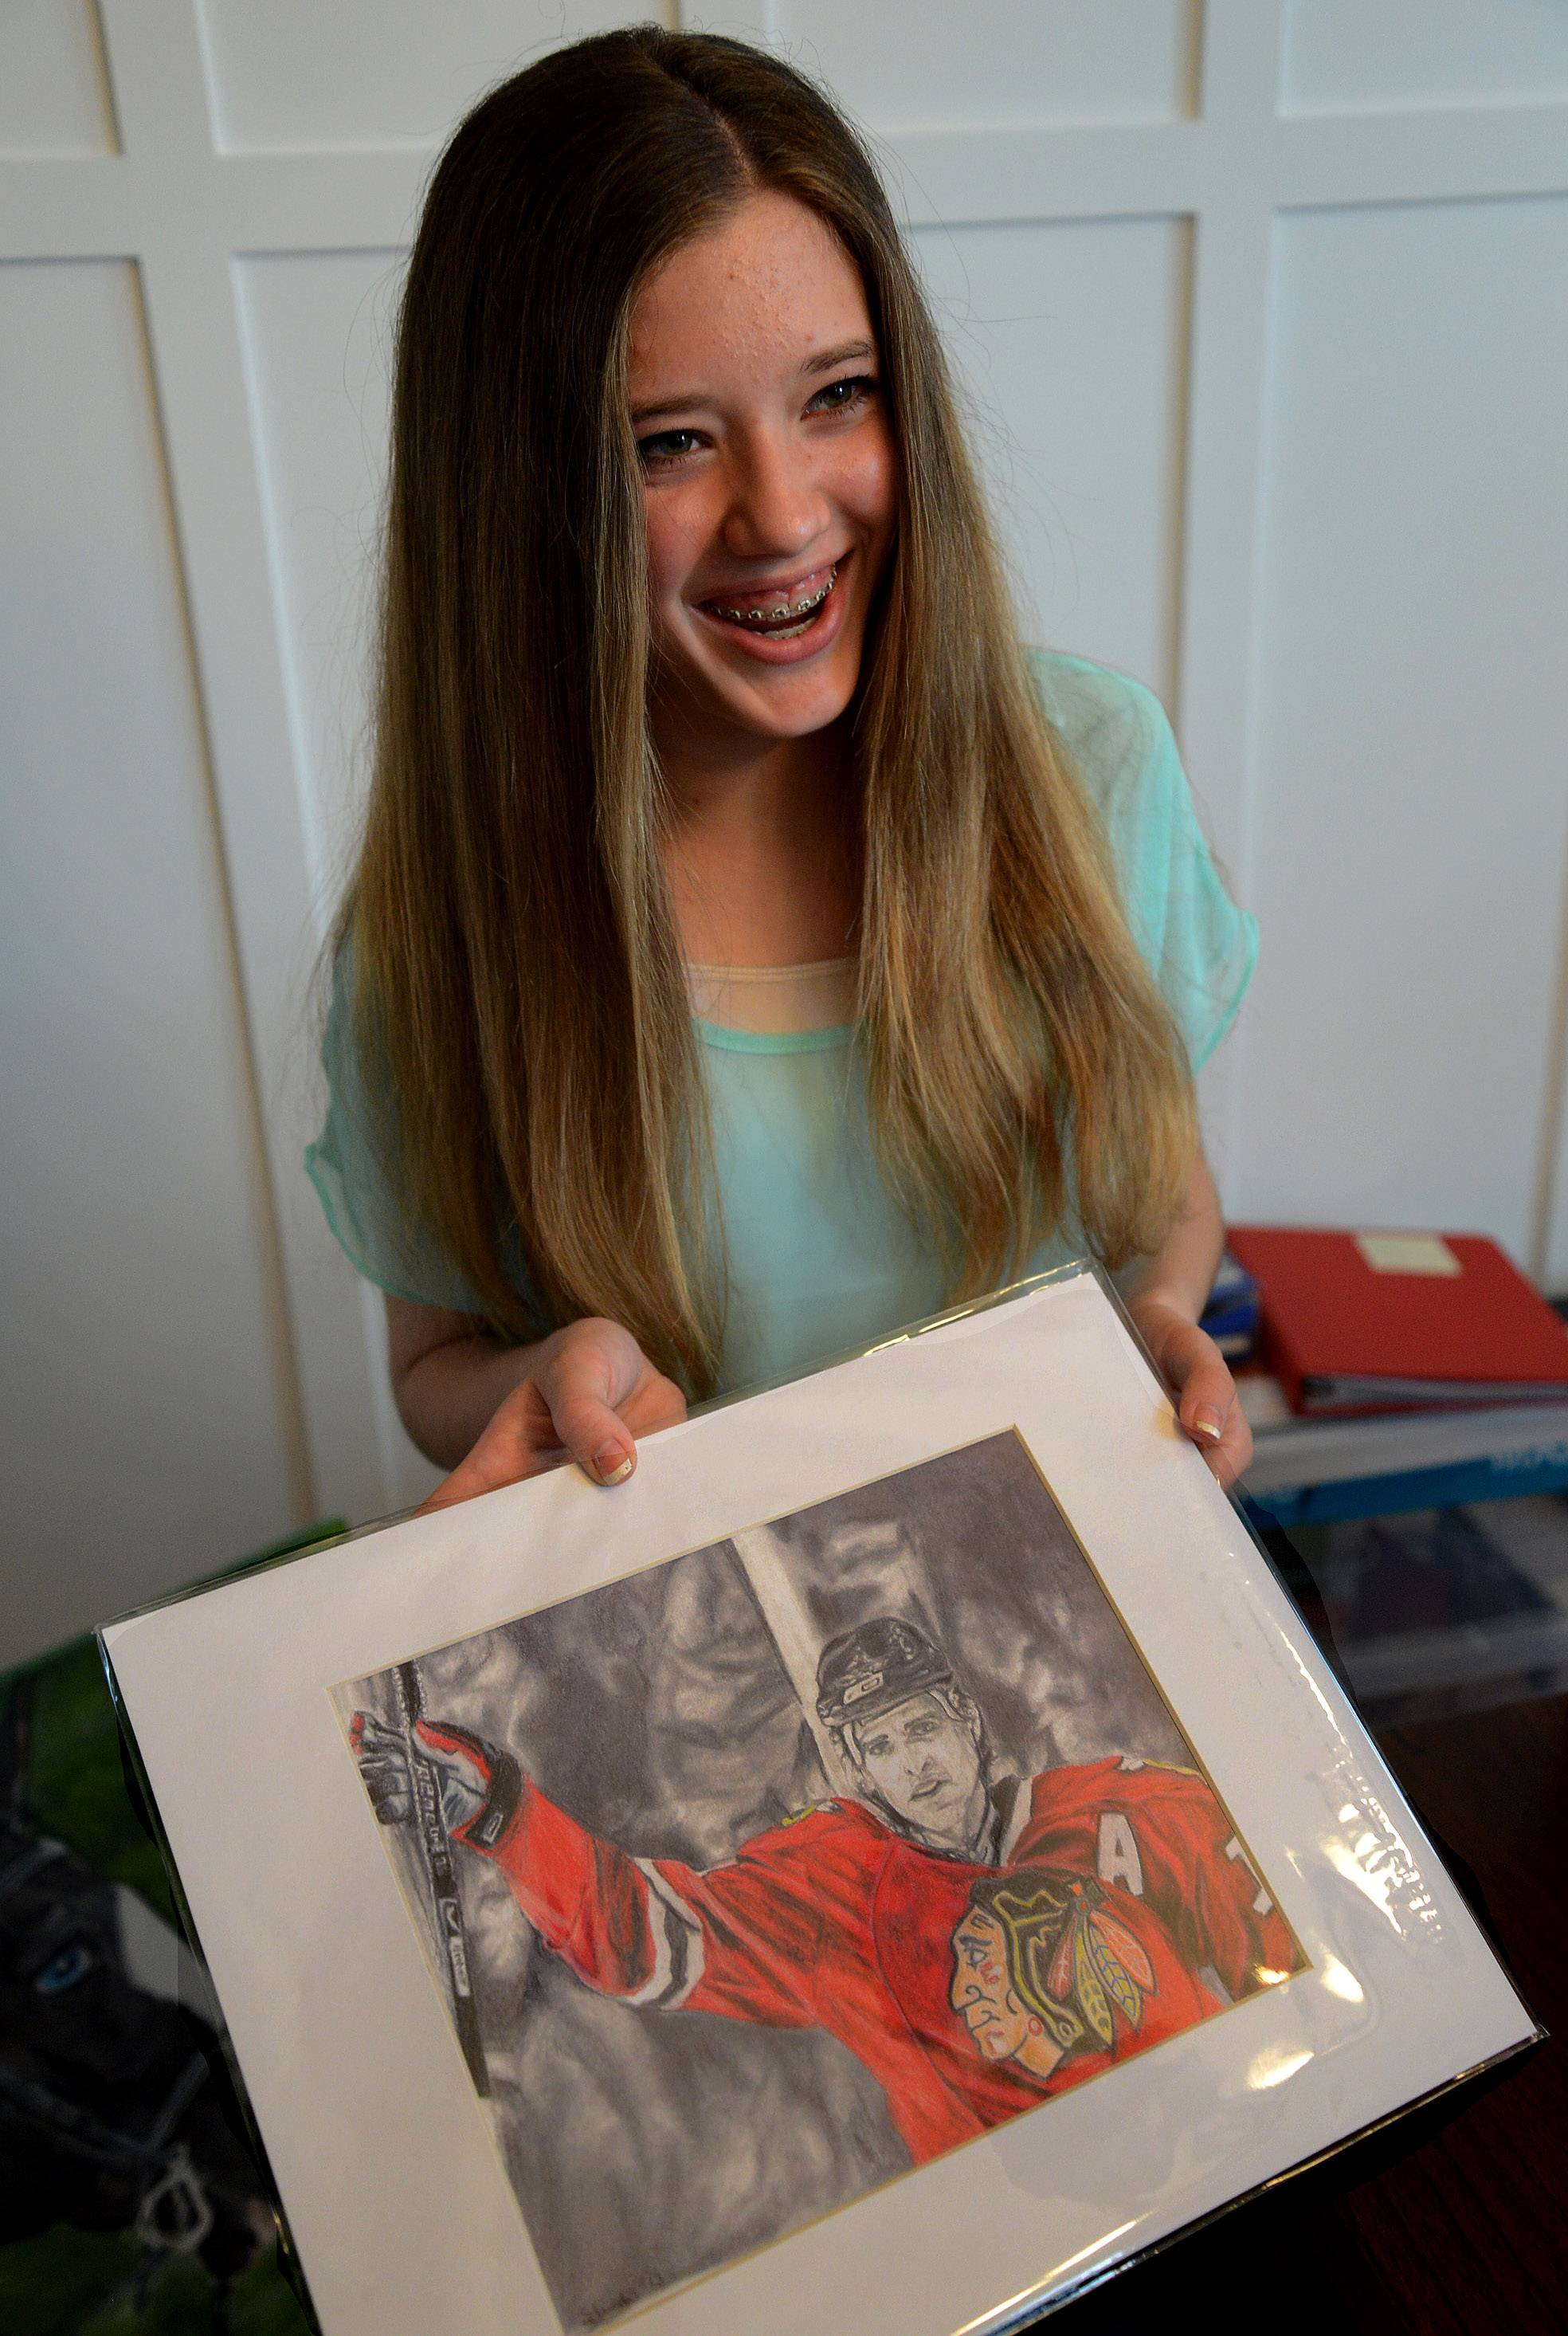 Sydney Janda with one of her Blackhawks prints, this one of Patrick Sharp.